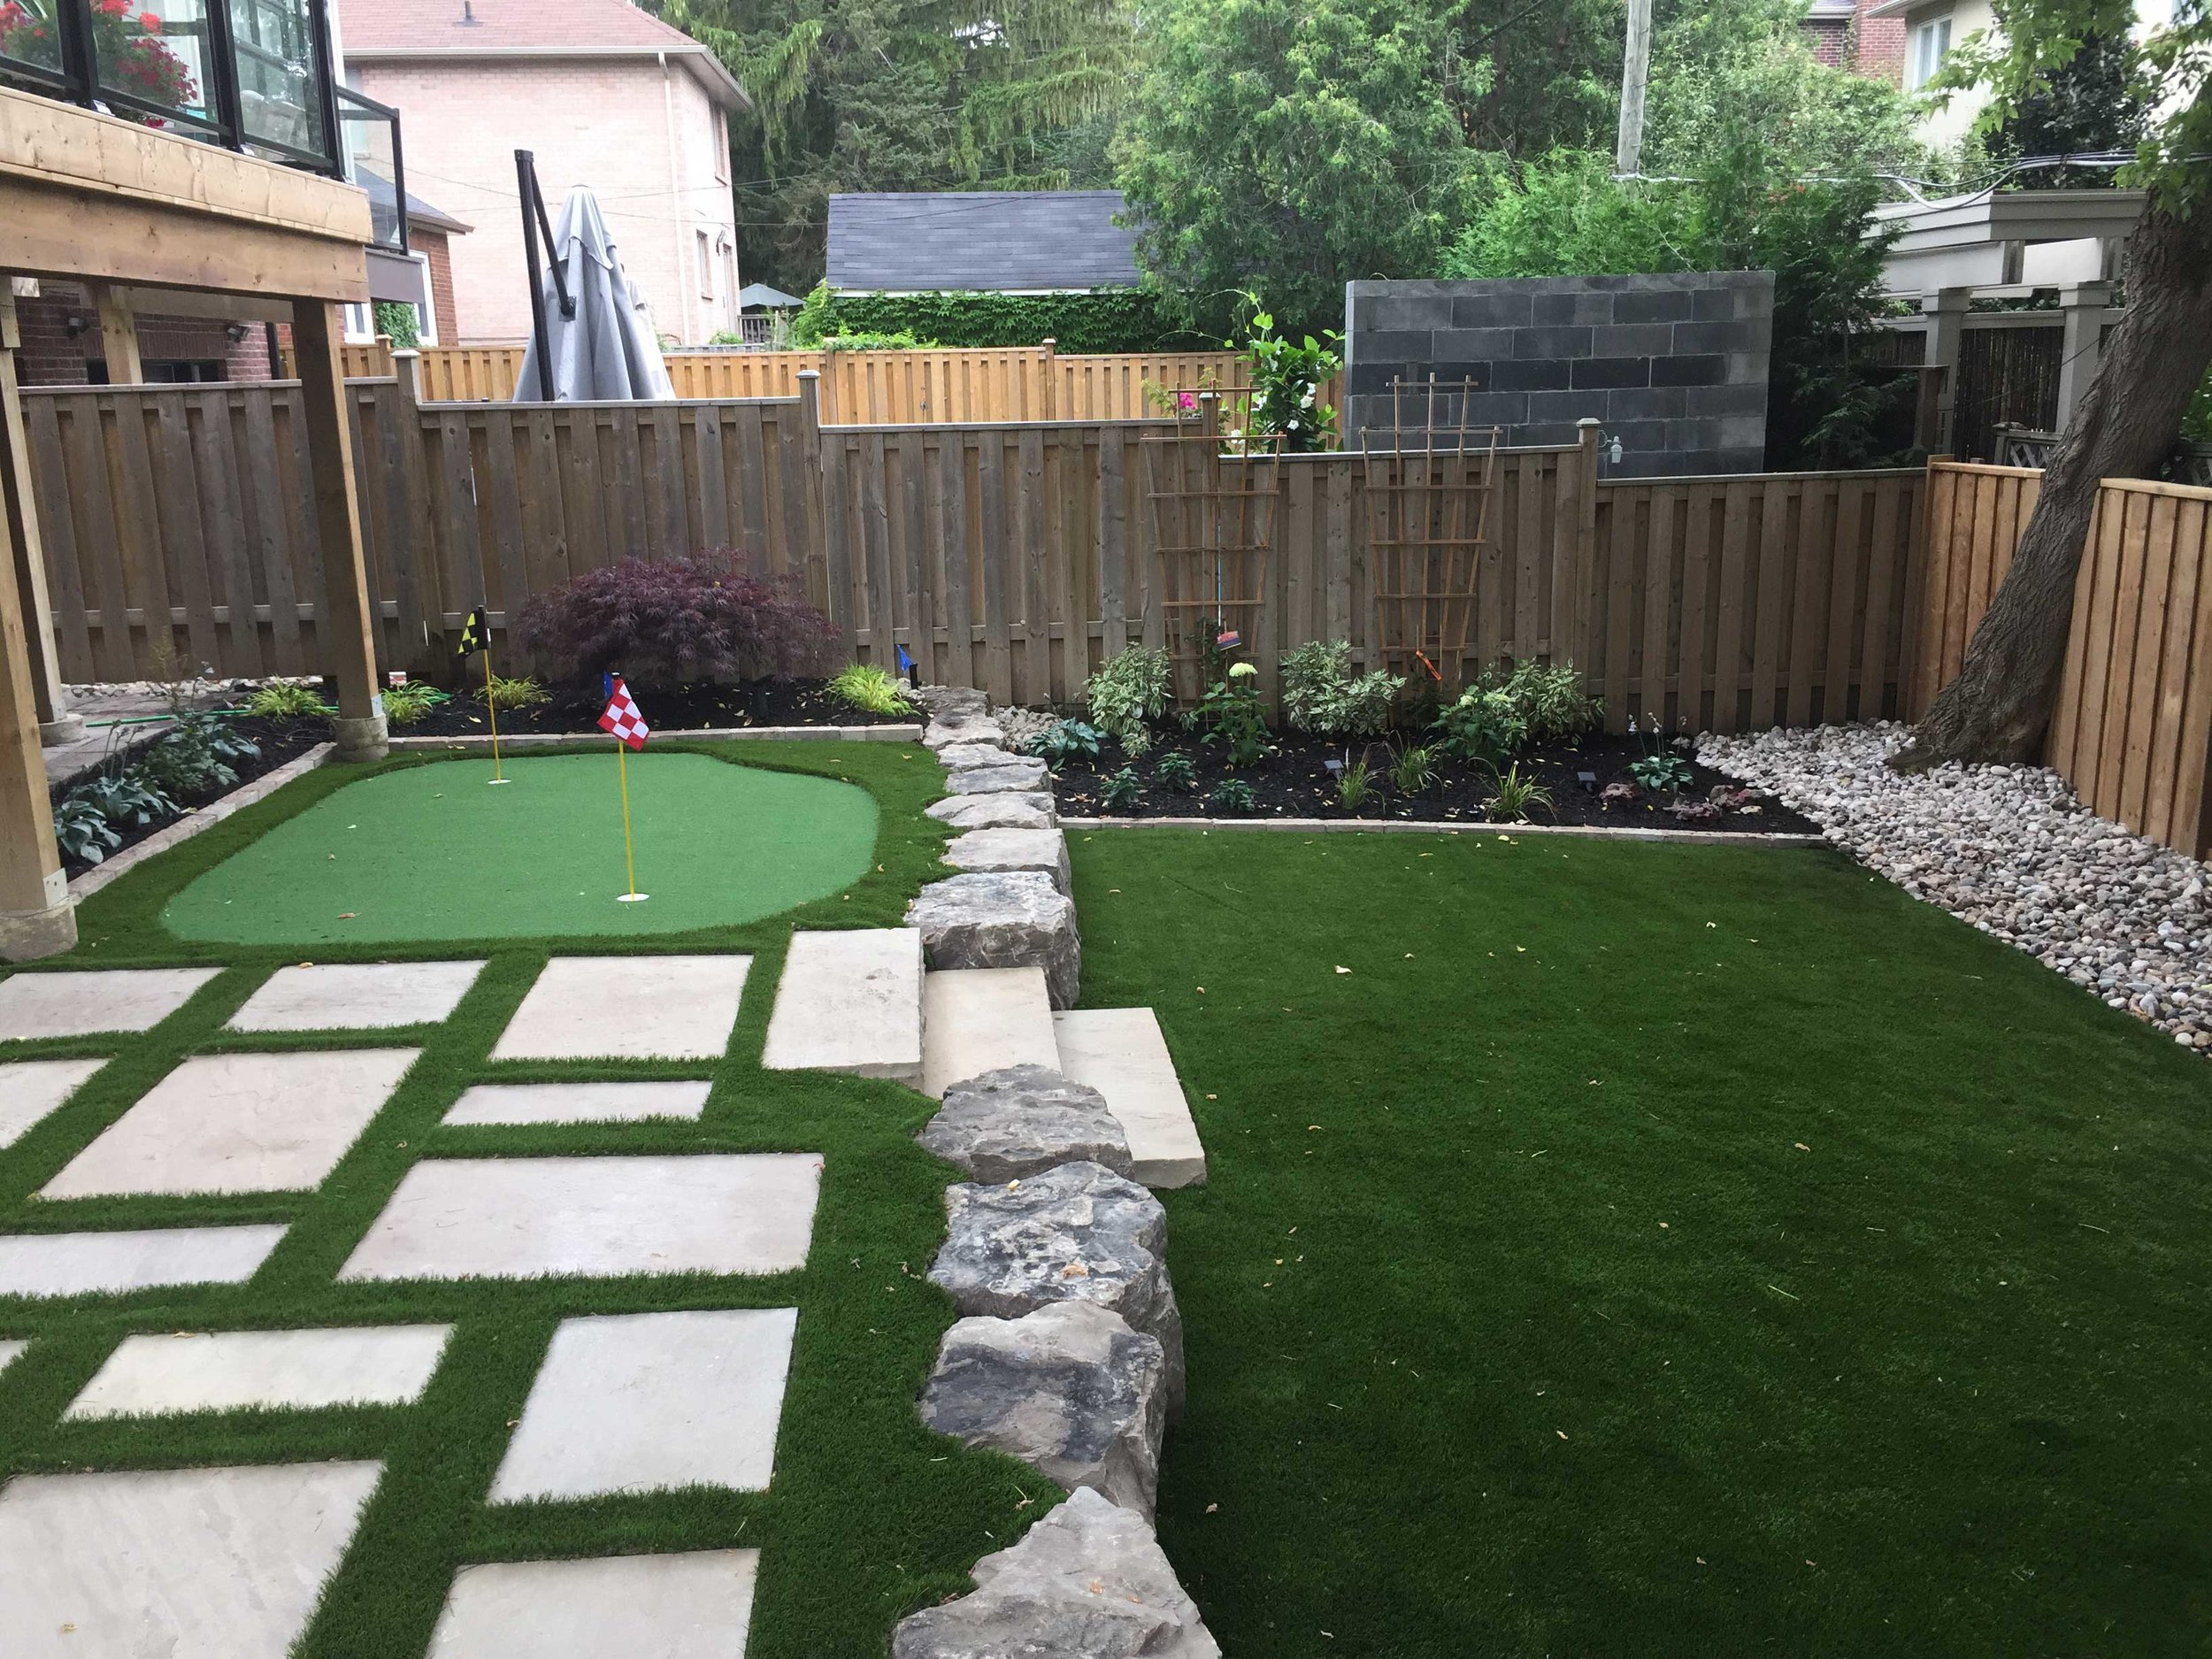 PUTTING GREEN - after